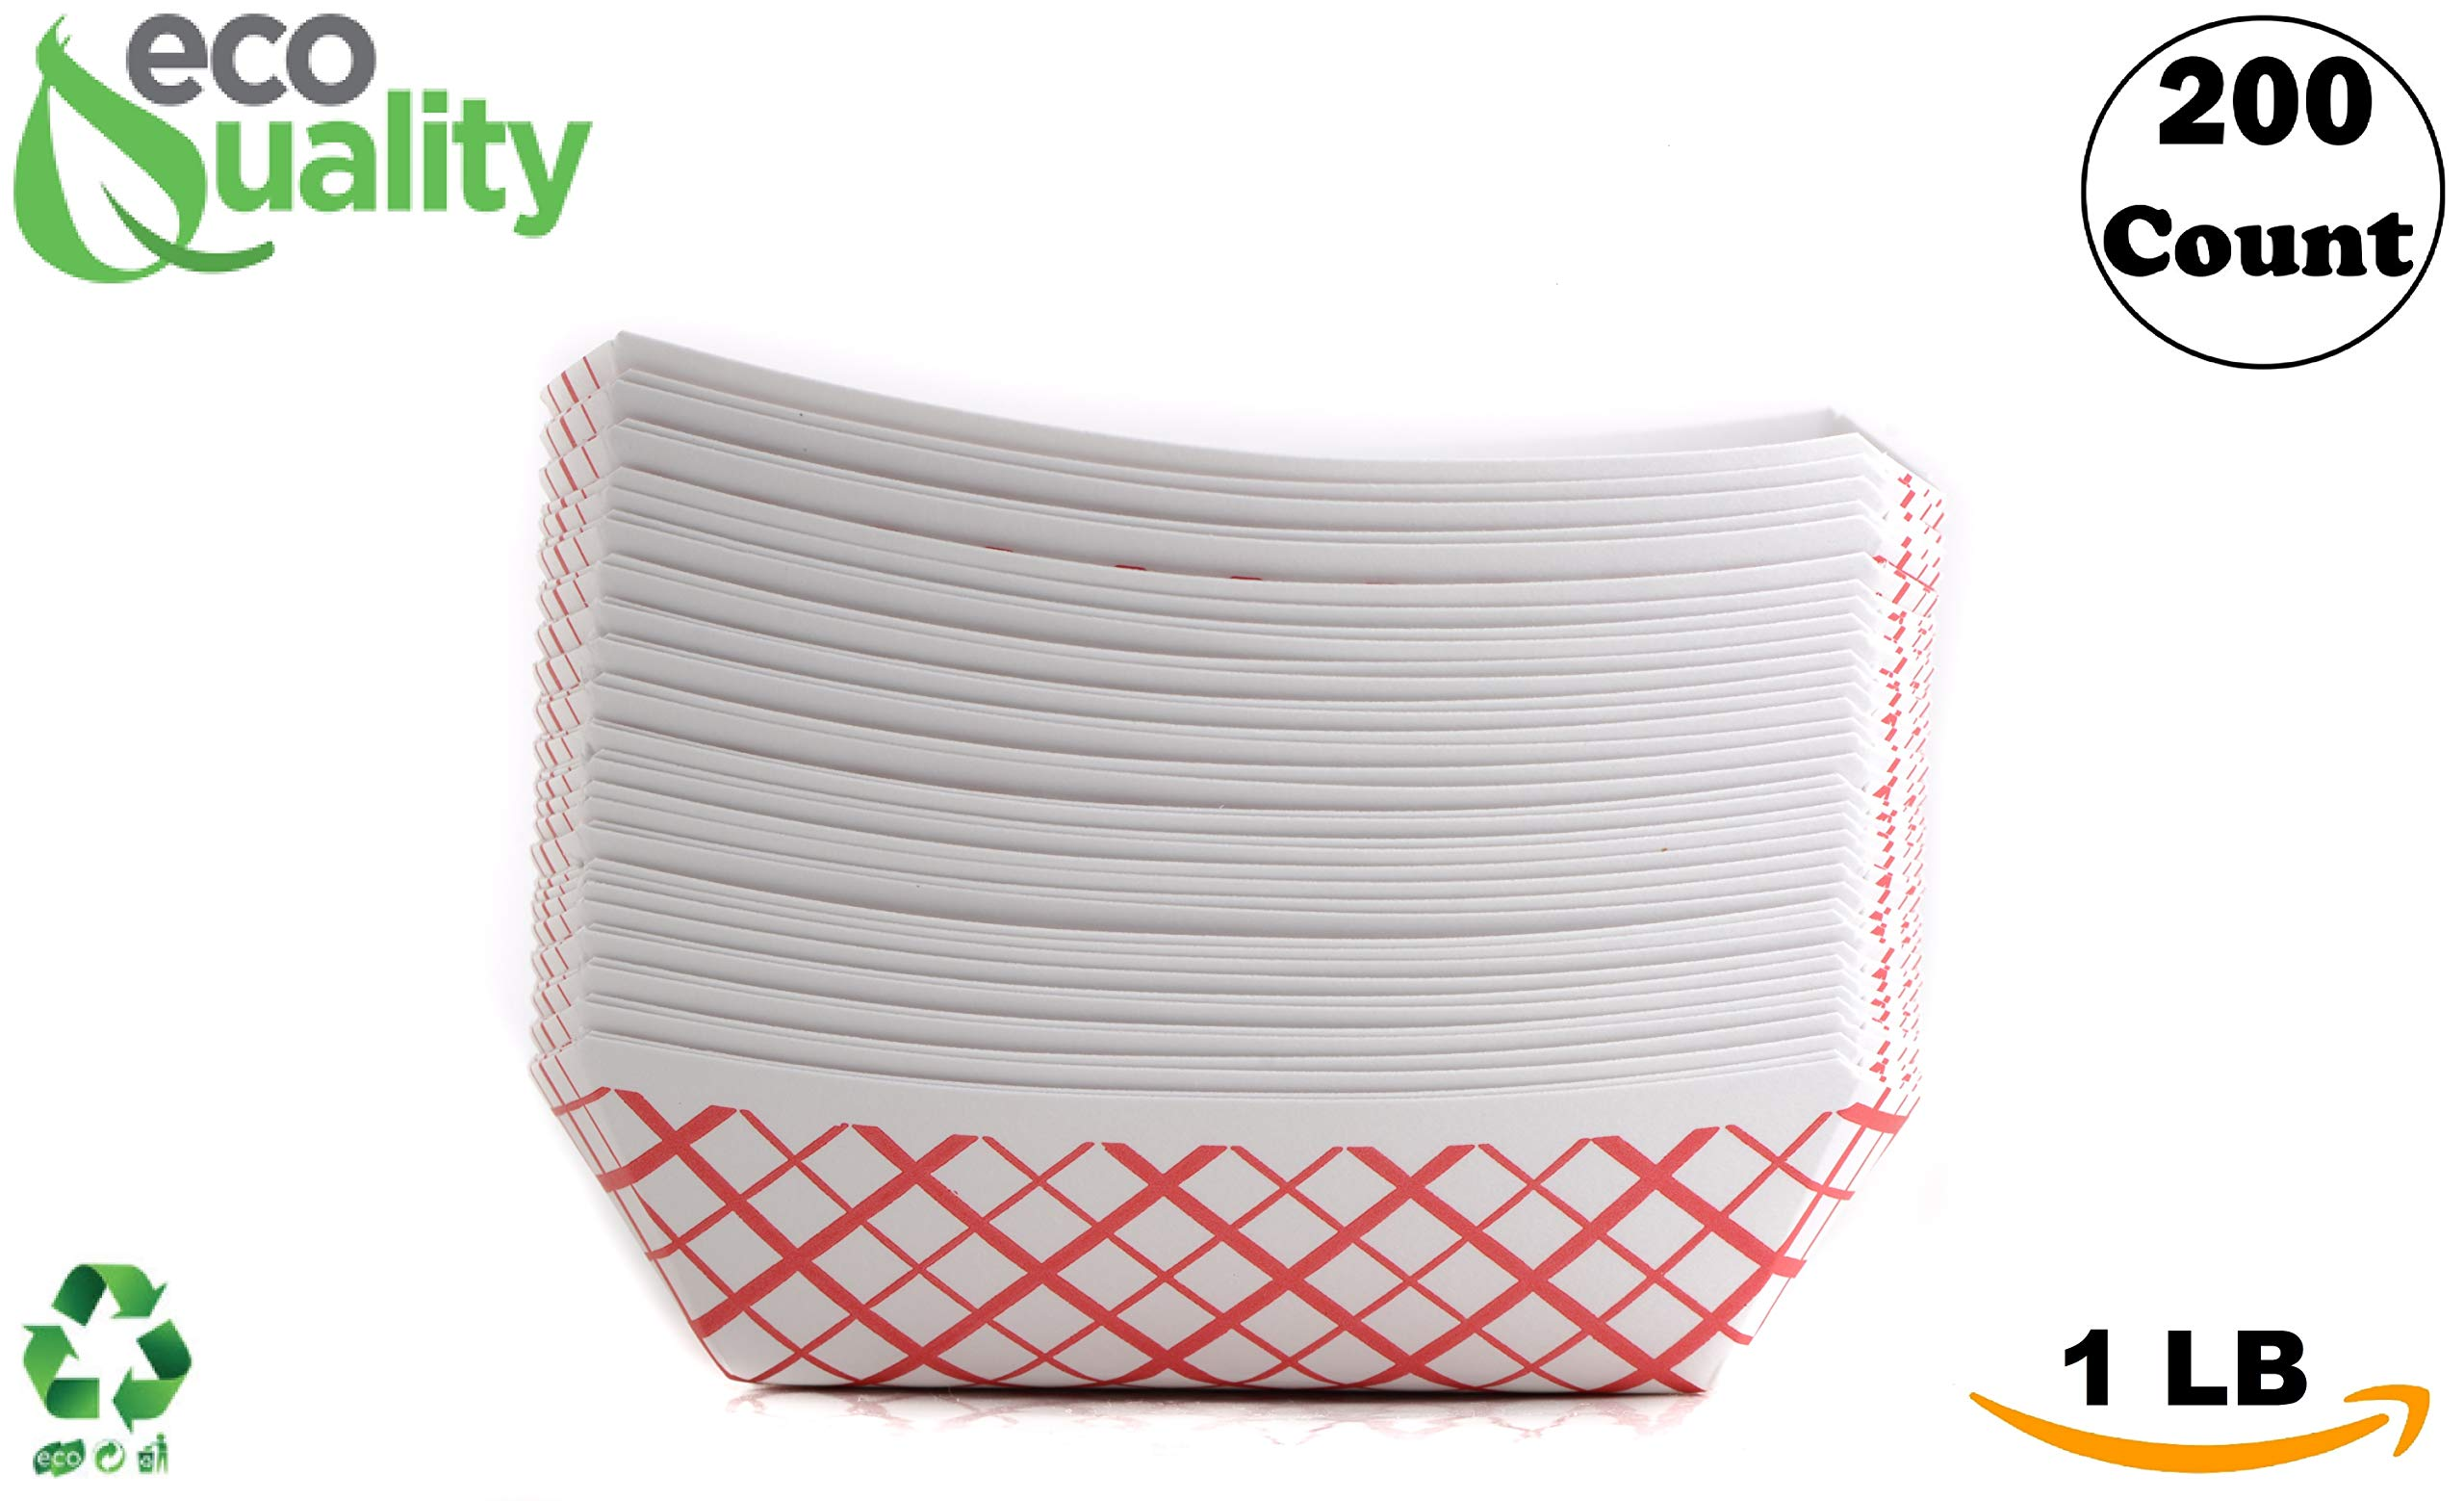 200ct Heavy Duty Disposable Paper Food Tray (1 LB) - Red Check Food Tray, USA MADE, Recyclable, Biodegradable, Compostable, Great for Picnics, Carnivals, Party, Camping, BBQ, Restaurants, Fries